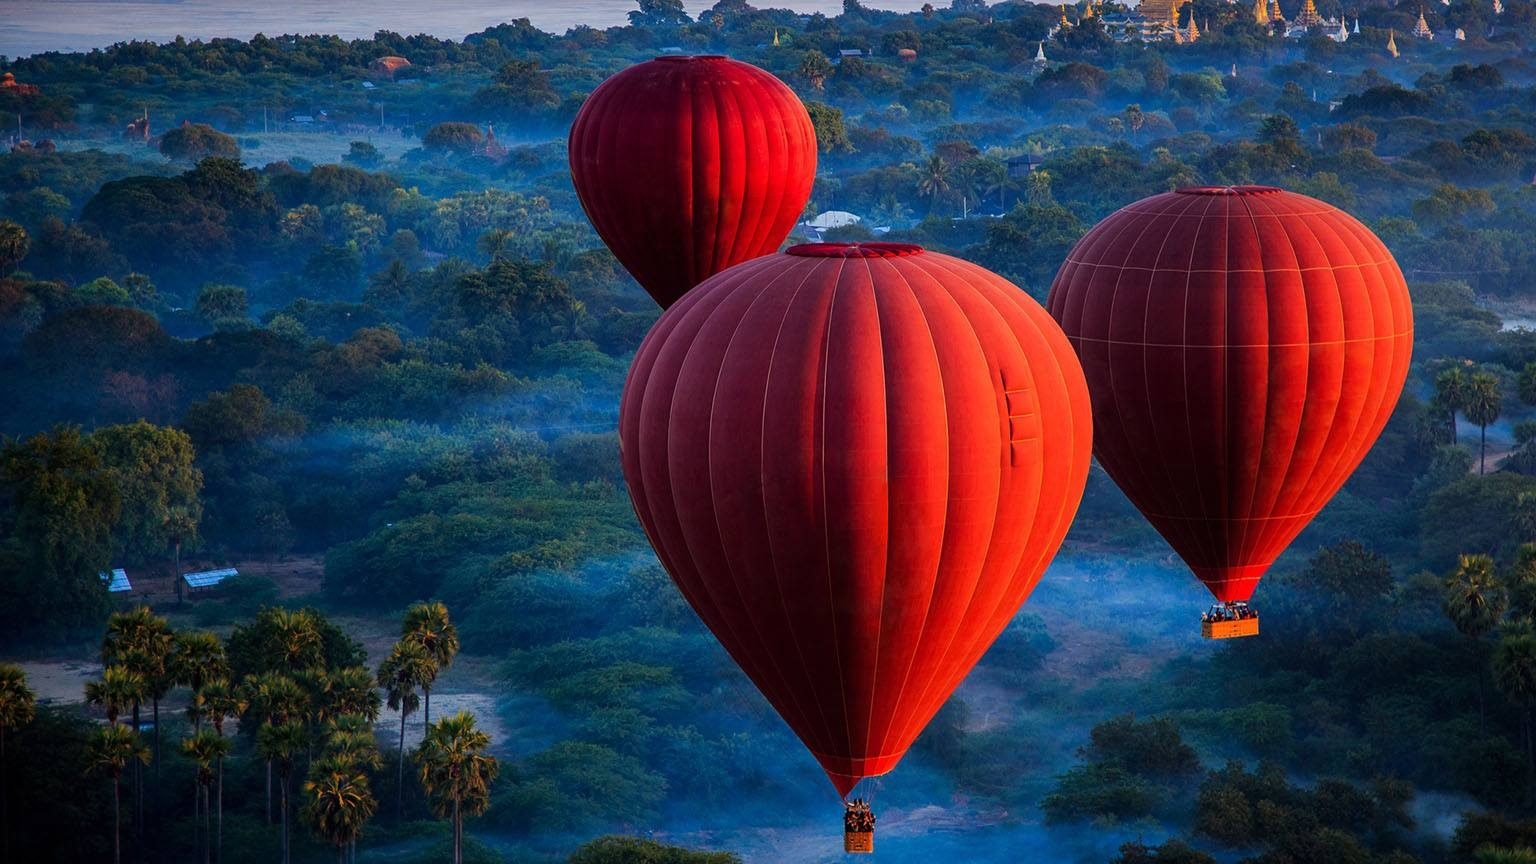 Red hotair balloon